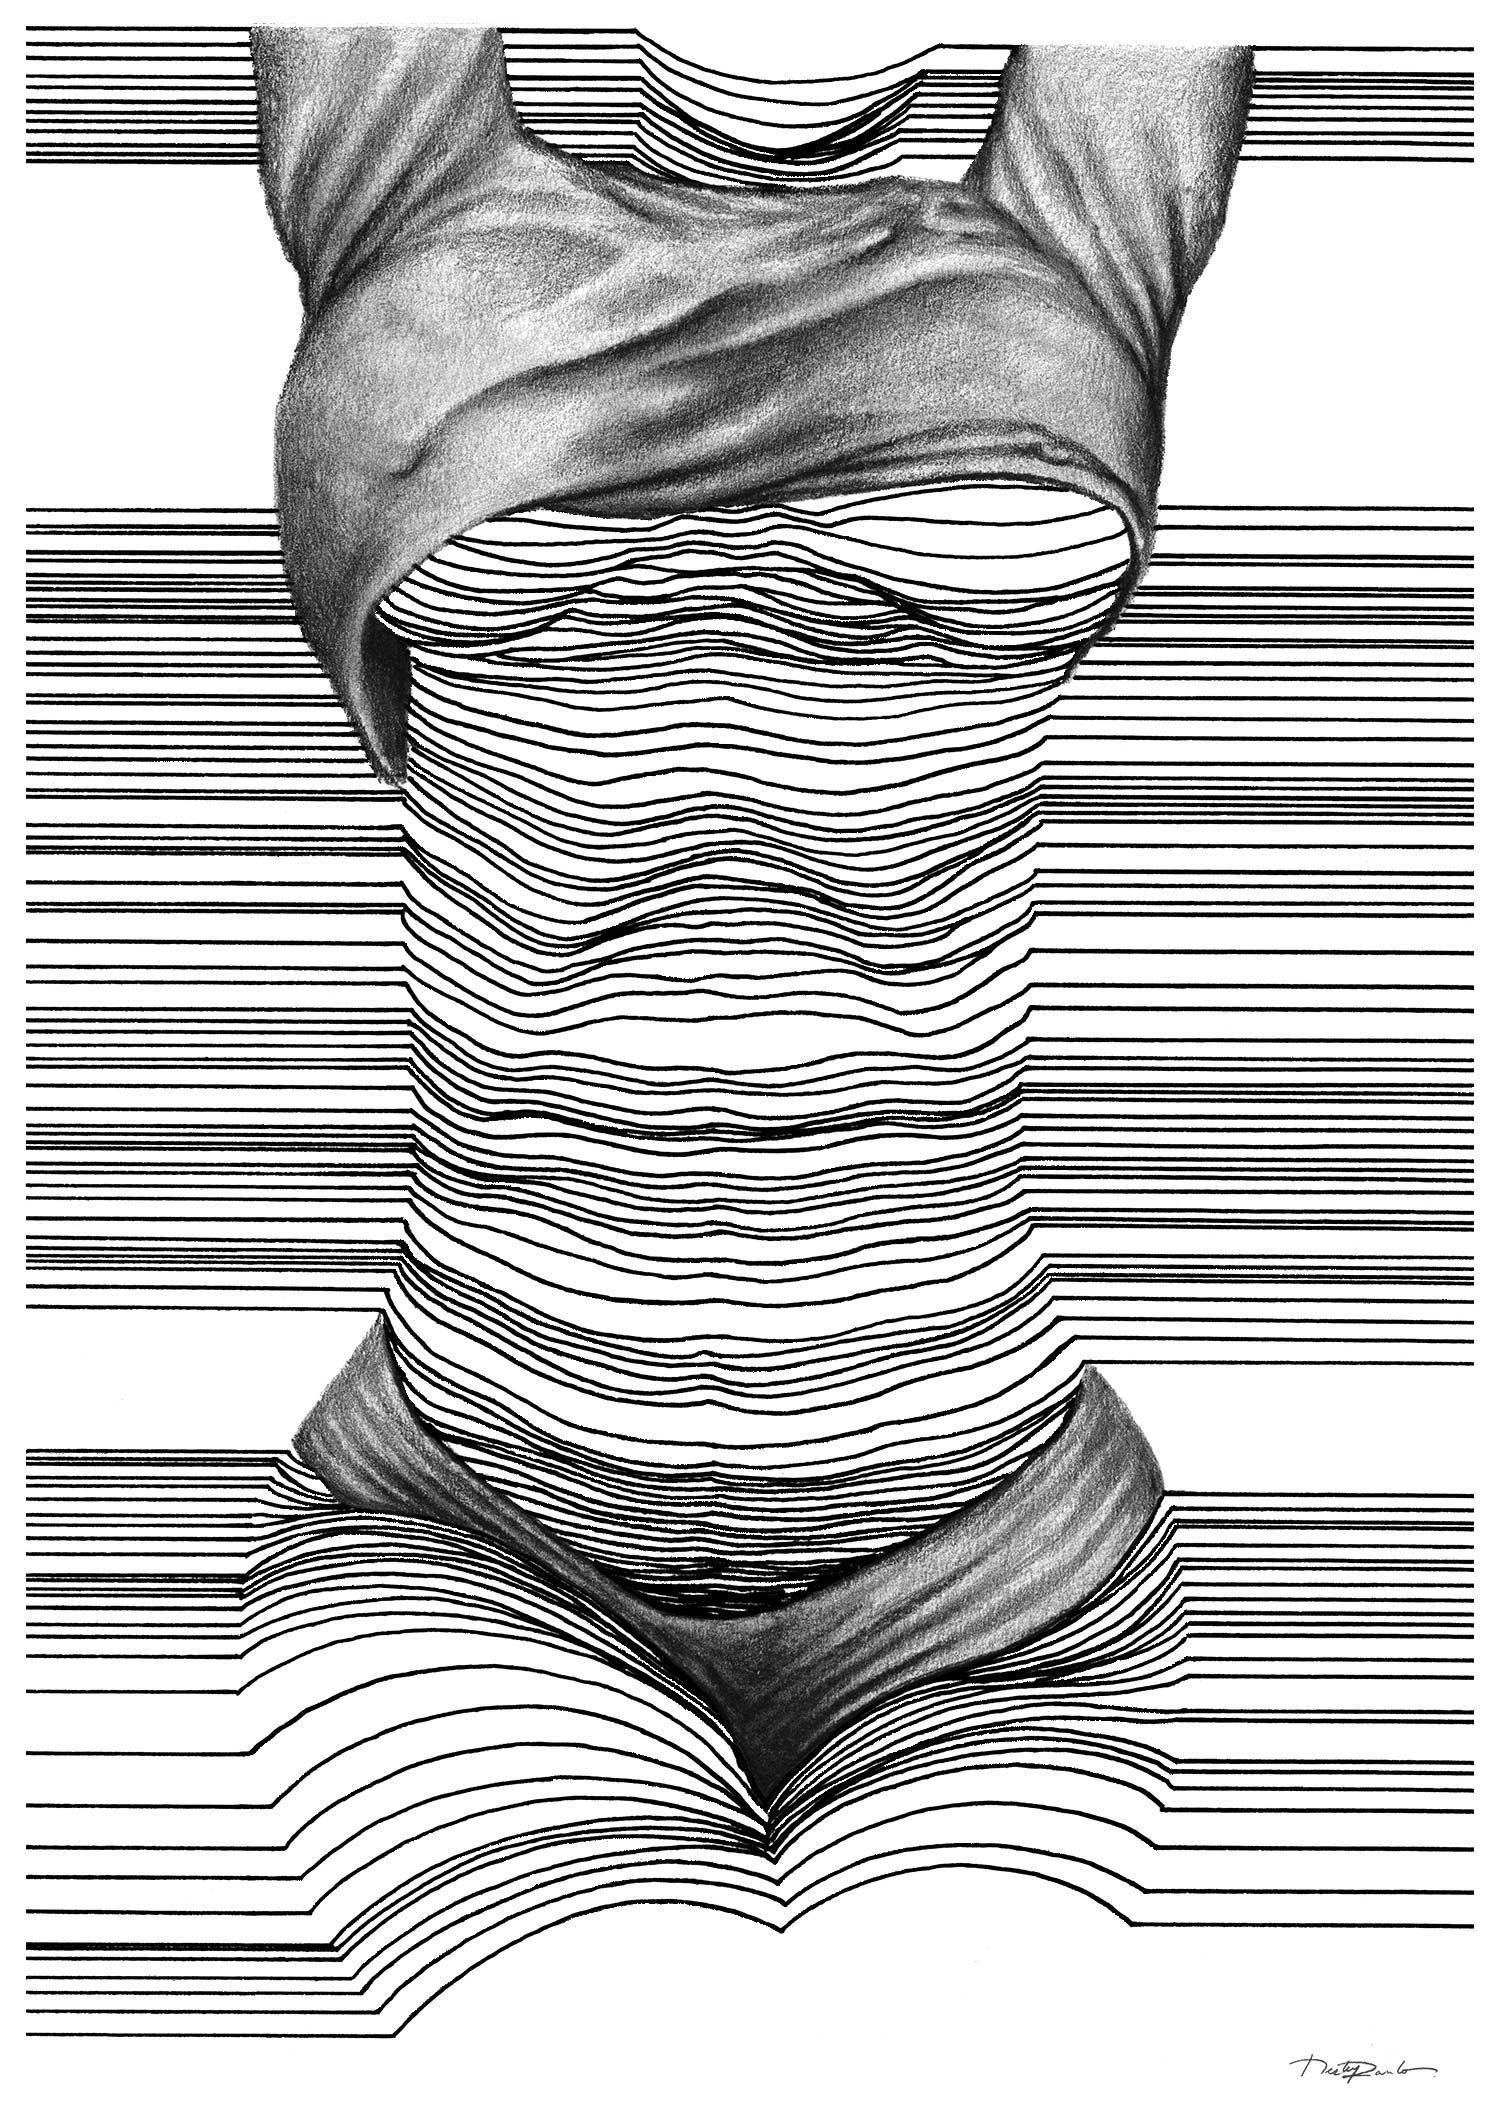 Drawing Lines With D : Sensual d line art by nester formentera pinterest